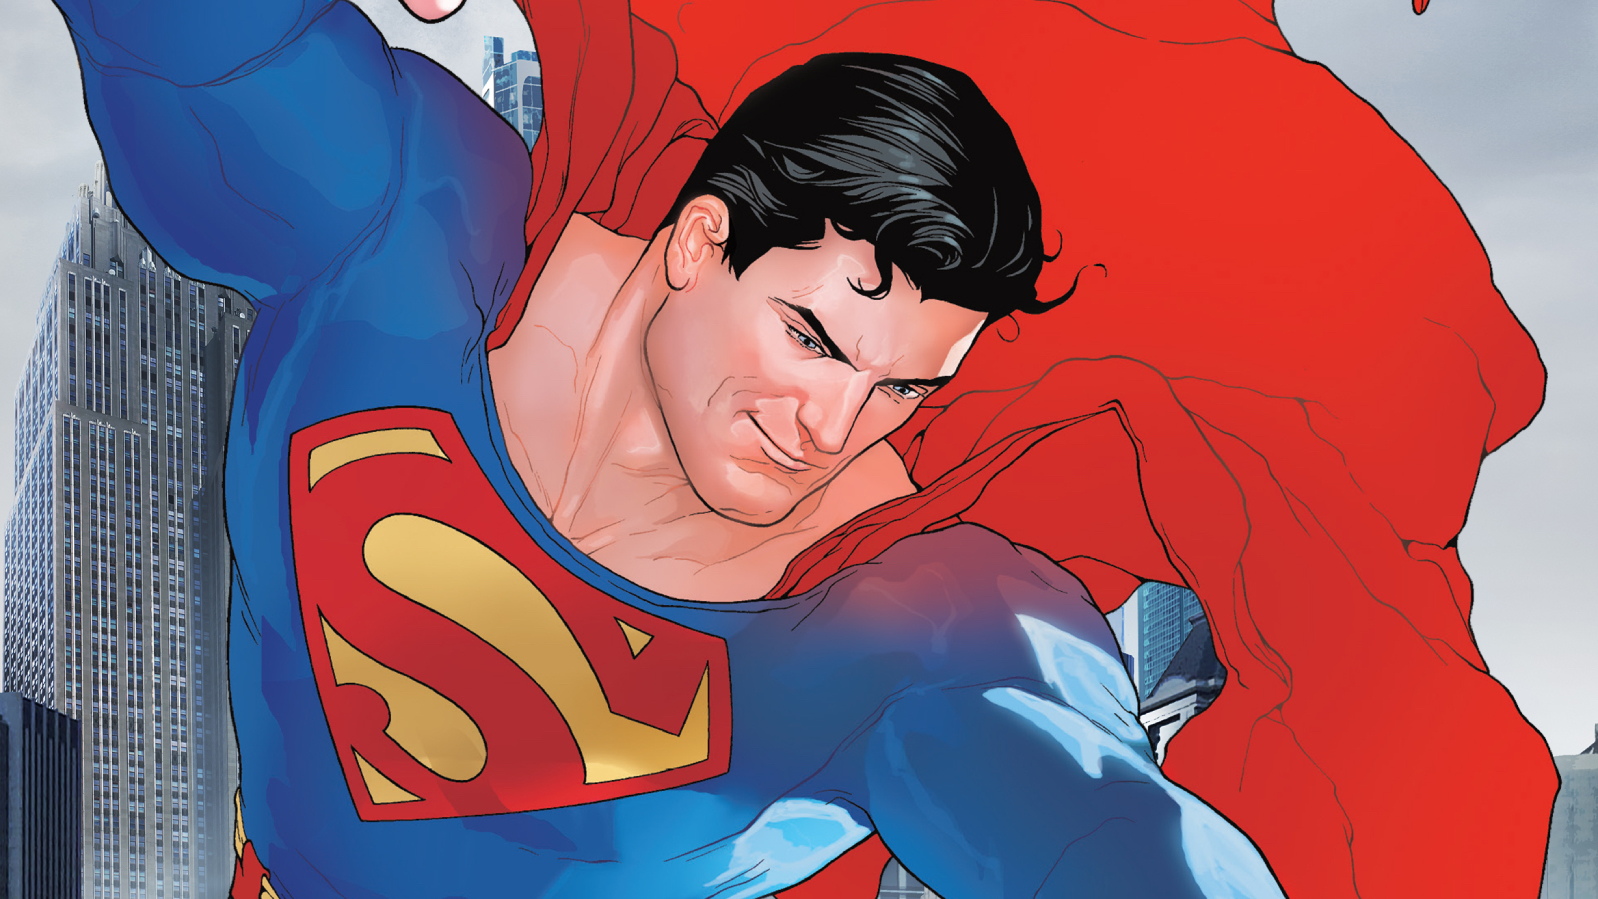 DC Comics Artist Quits After Publisher Announces Superman Will be Bisexual